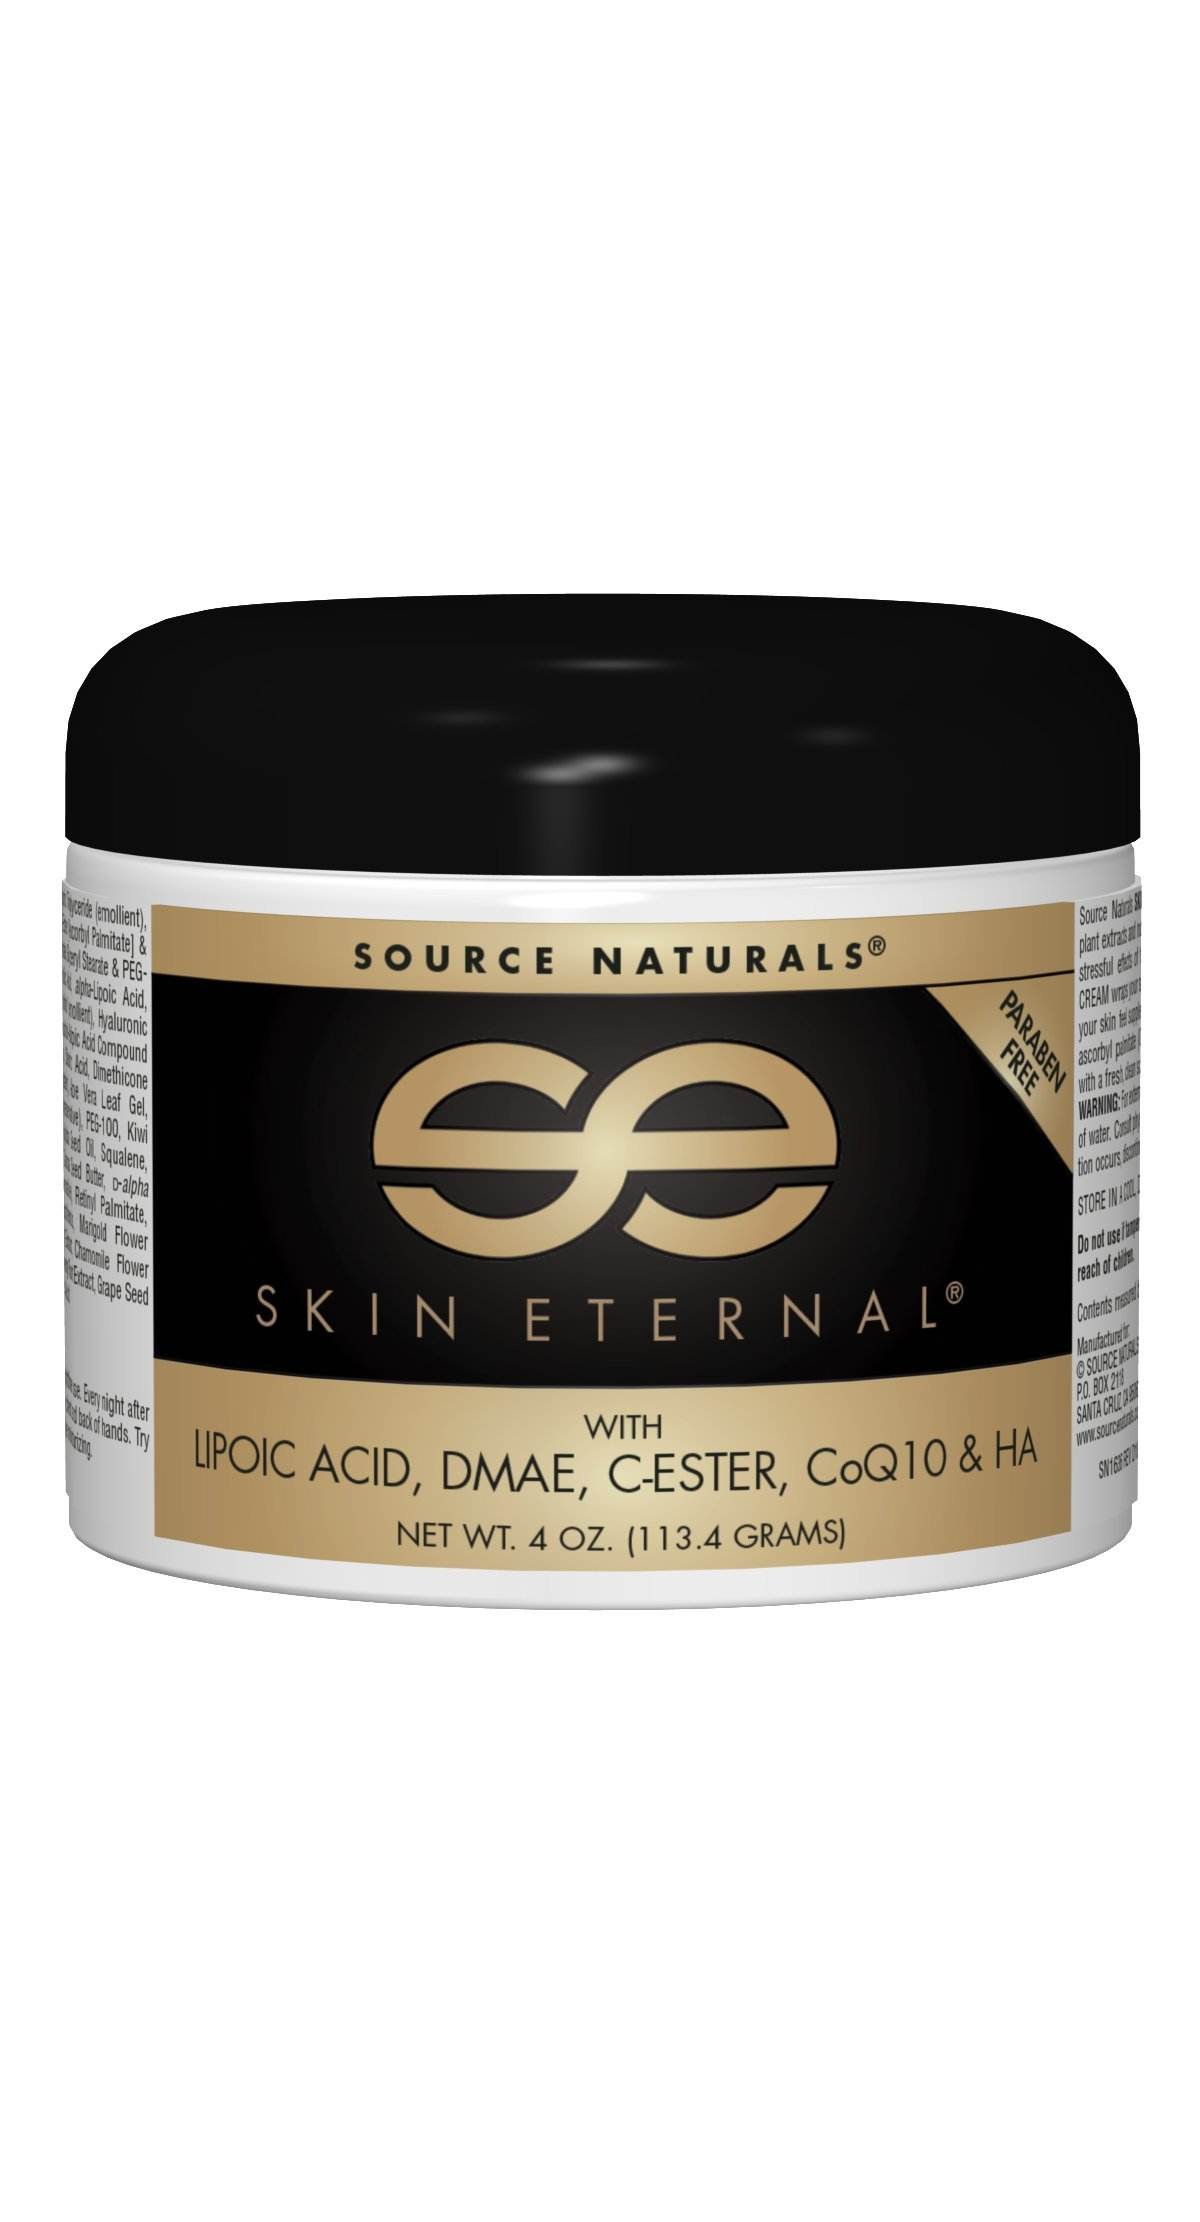 Source Naturals Skin Eternal Cream Moisturizing Skin Food With C-Ester, DMEA, Lipoic Acid & More - 4 oz